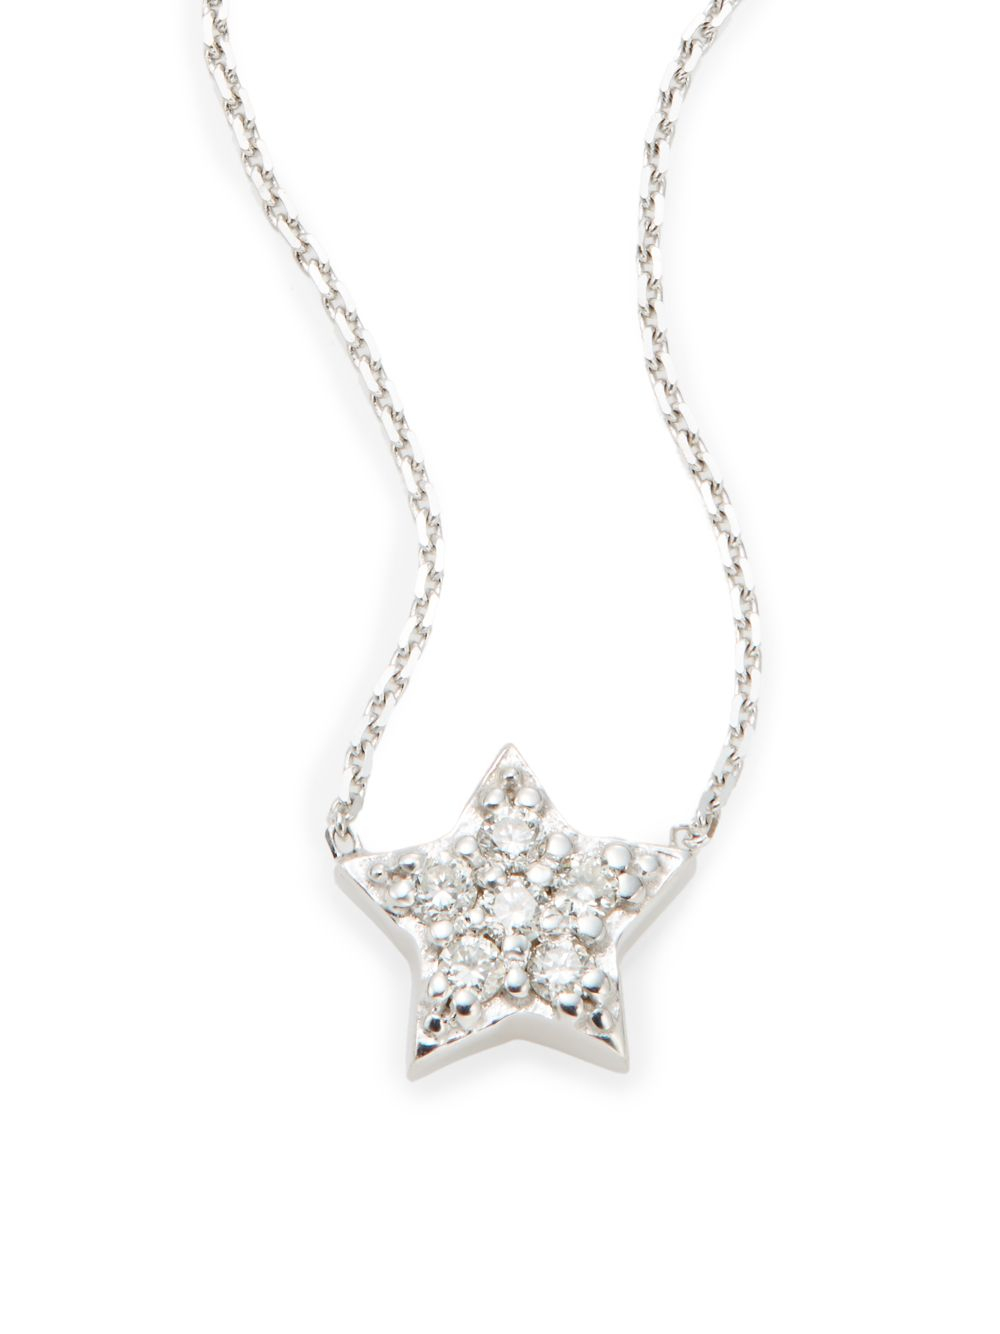 Lyst kc designs diamond 14k white gold star pendant necklace in gallery aloadofball Choice Image